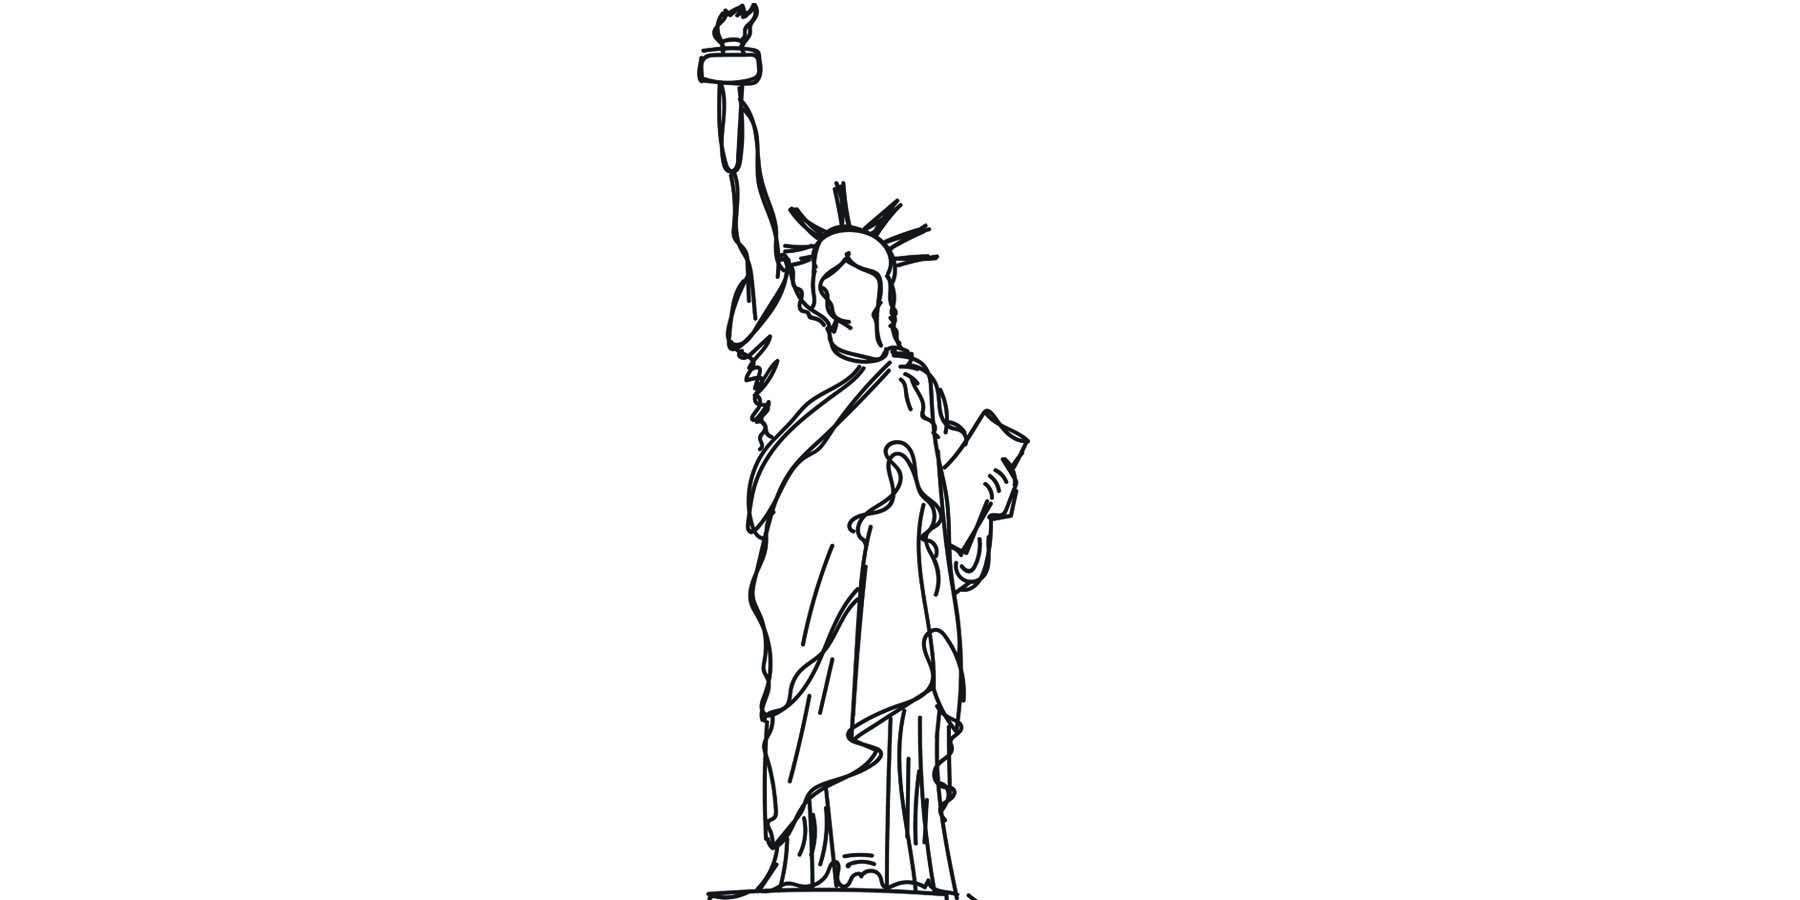 1800x900 Cycle 3 Week 3 Statue Of Liberty (Upside Down Drawing)